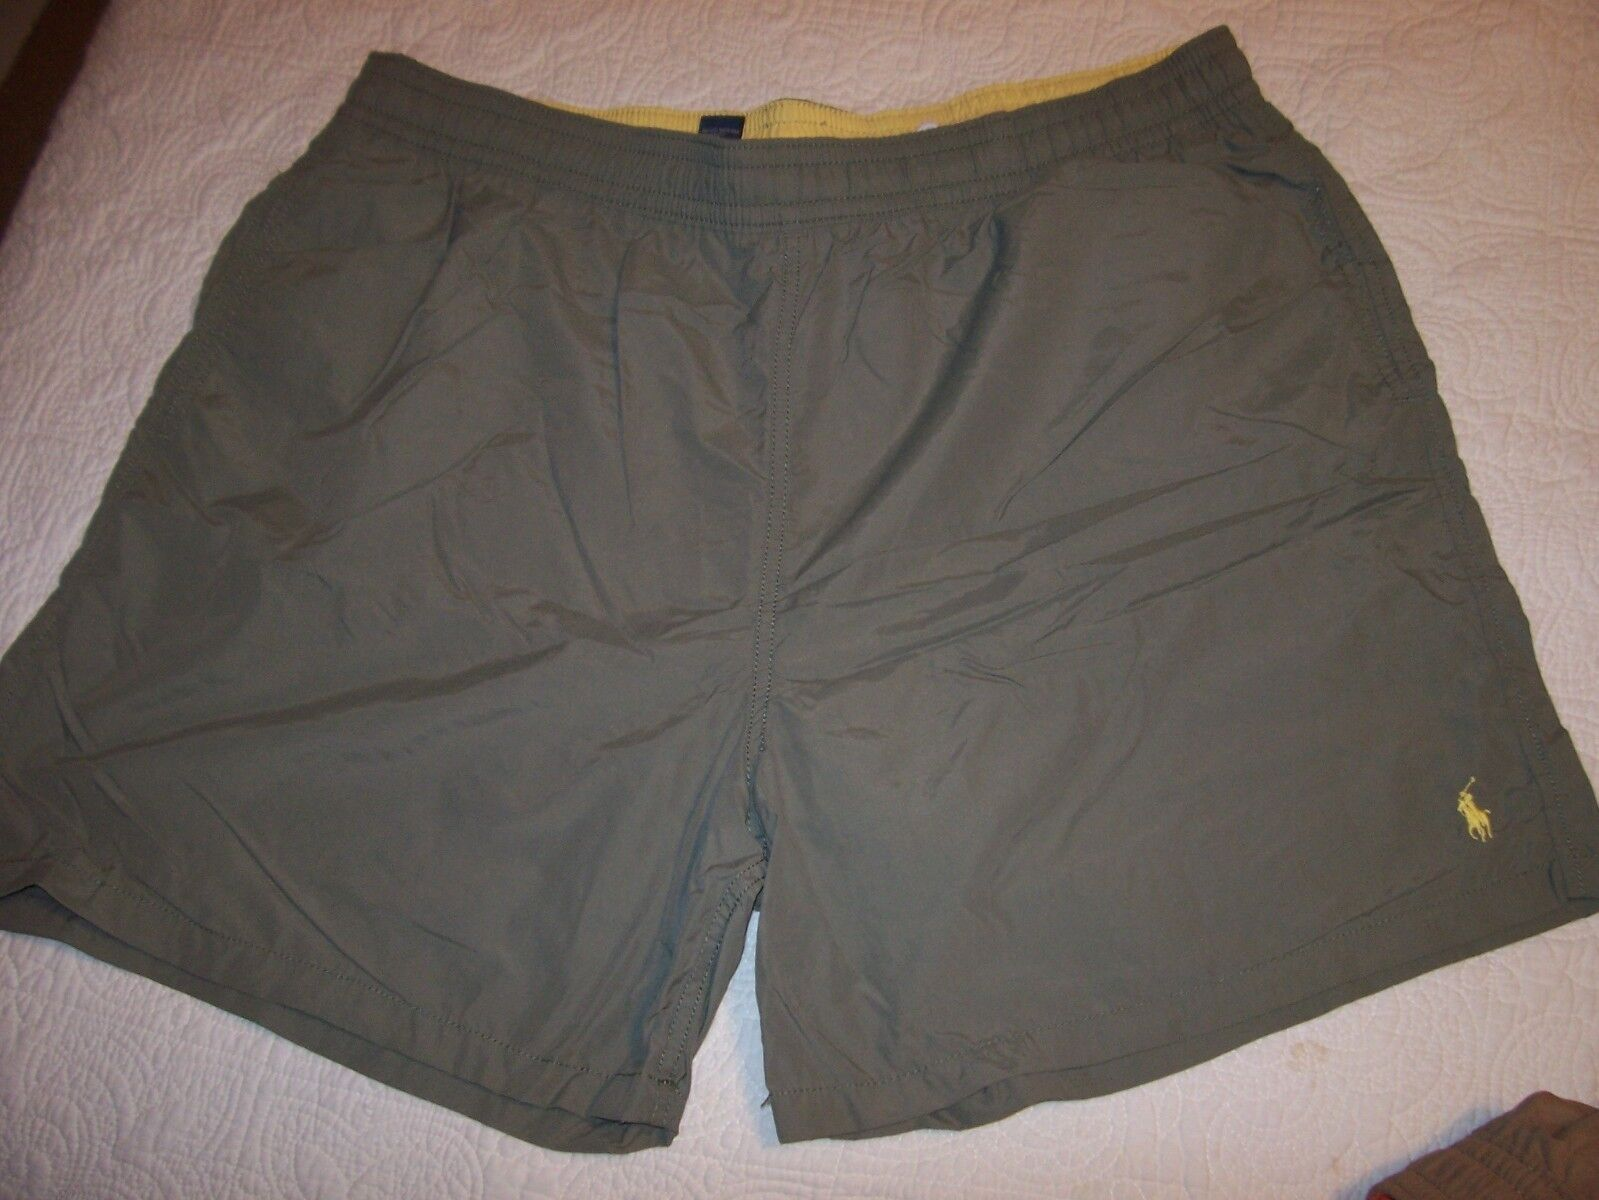 NEW Polo Ralph Lauren swim trunks shorts swimsuit olive green size 2X Big  2XB